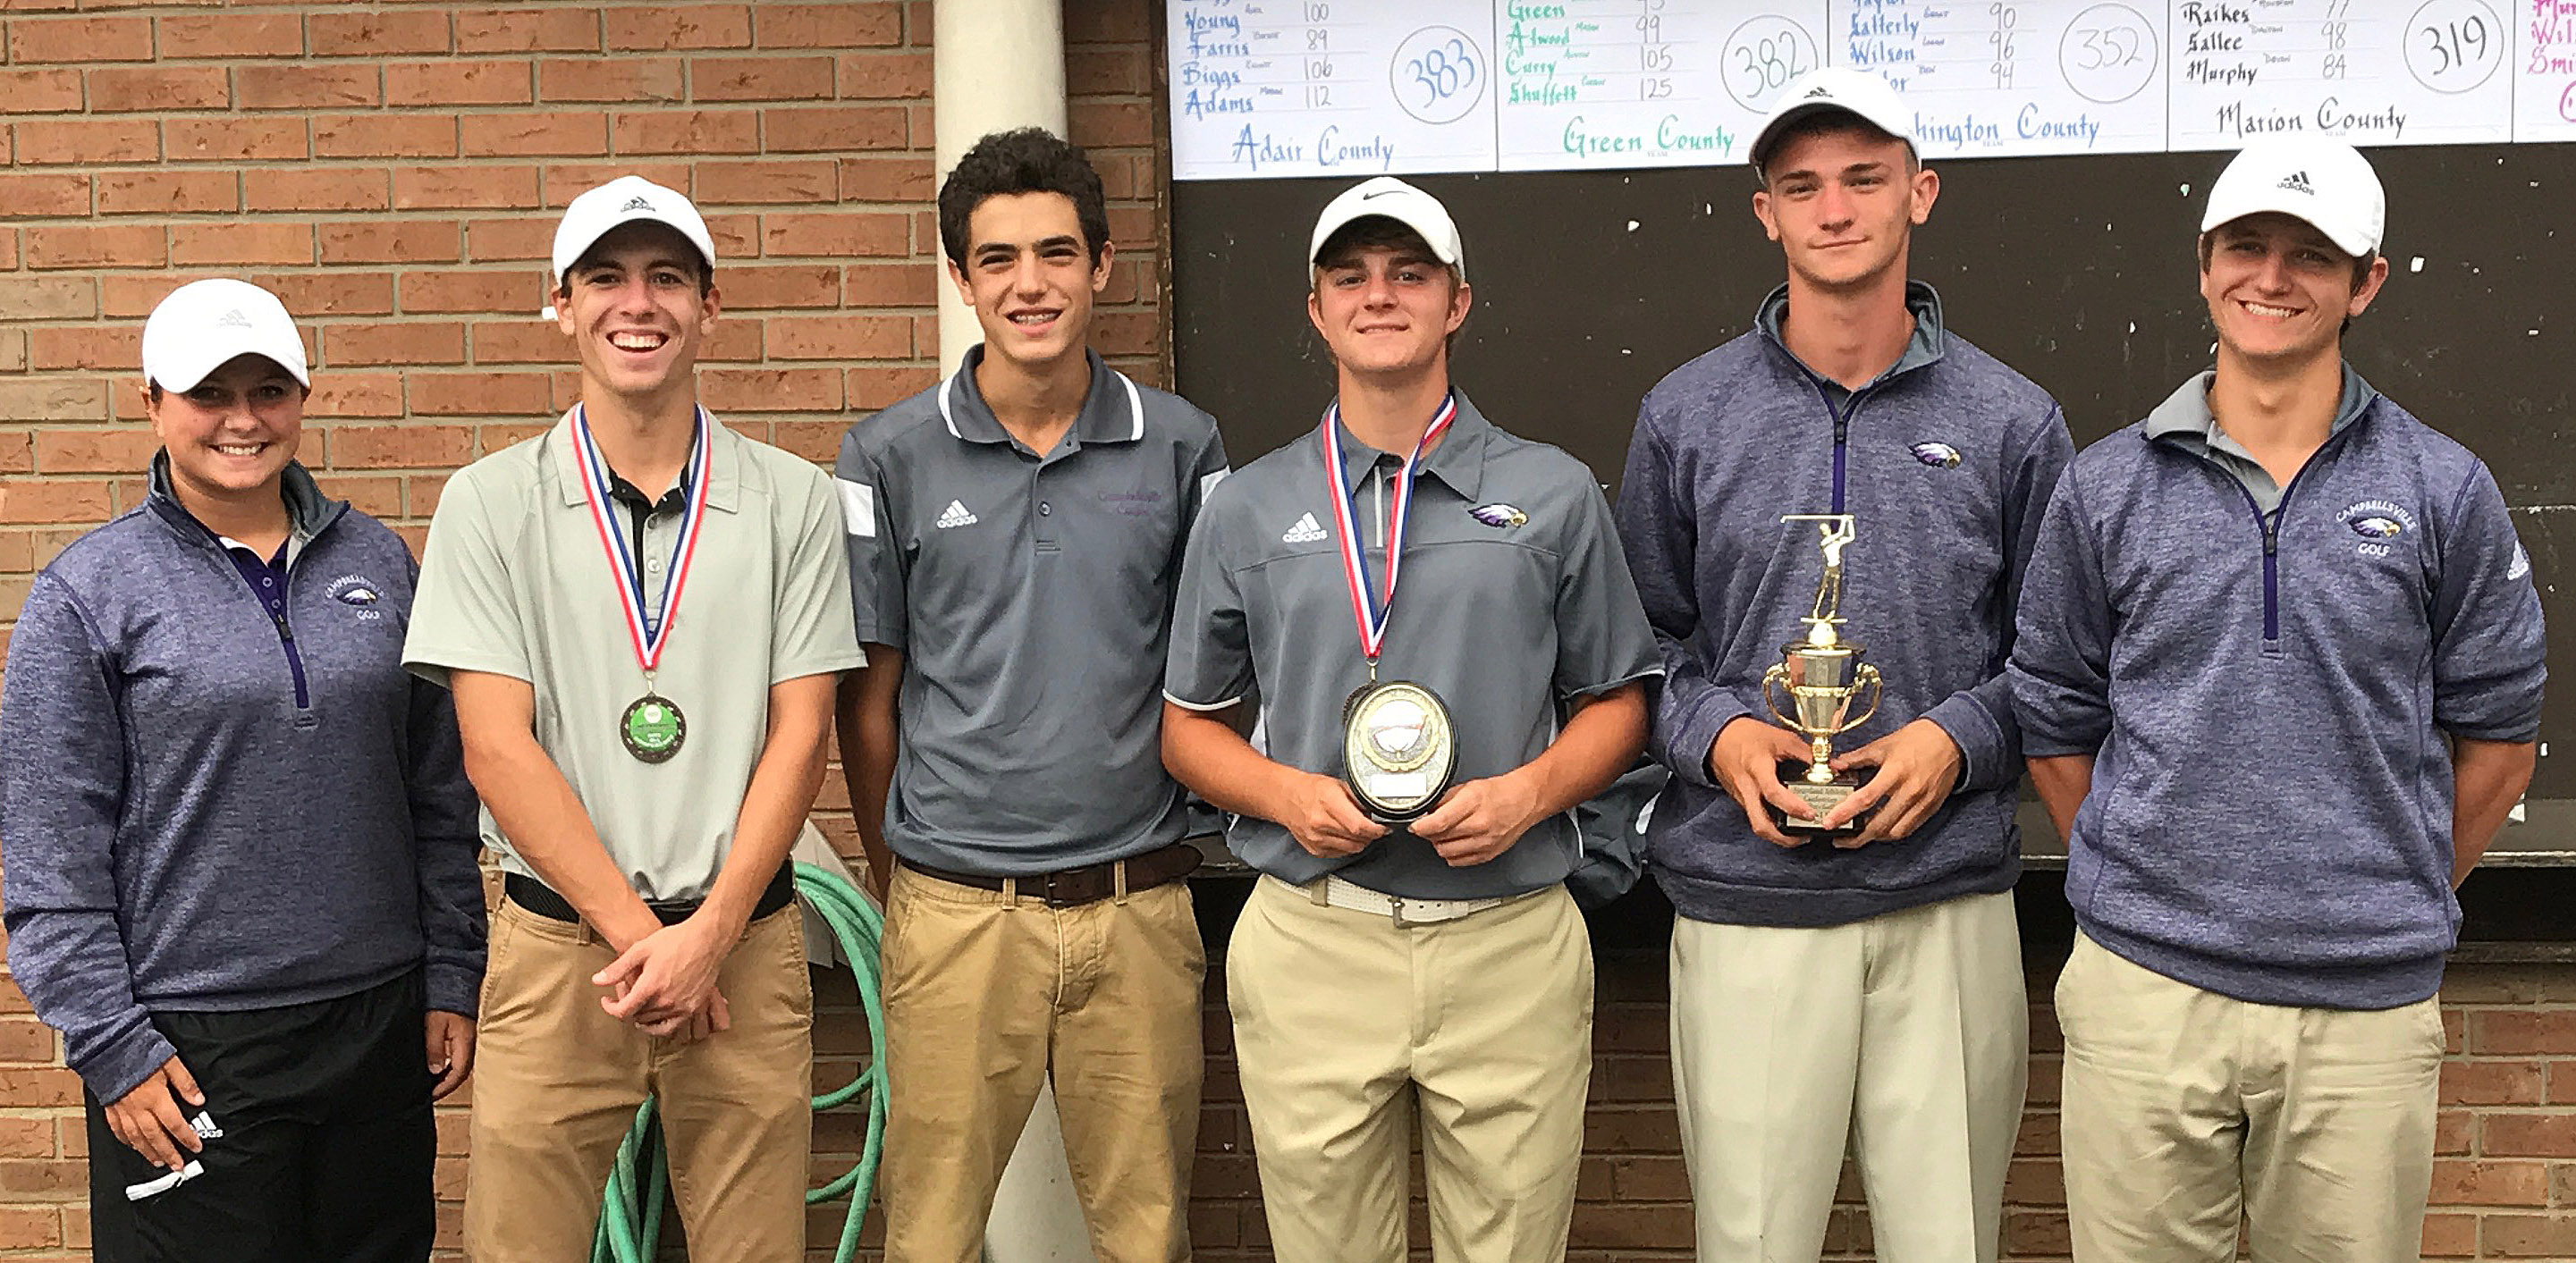 CHS boys' golf team finished this year's Heartland Conference tournament as runners-up. From left are coach Cassidy Decker, junior Layton Hord, freshman Kameron Smith, seniors Alex Doss and Connor Wilson and junior Myles Murrell.